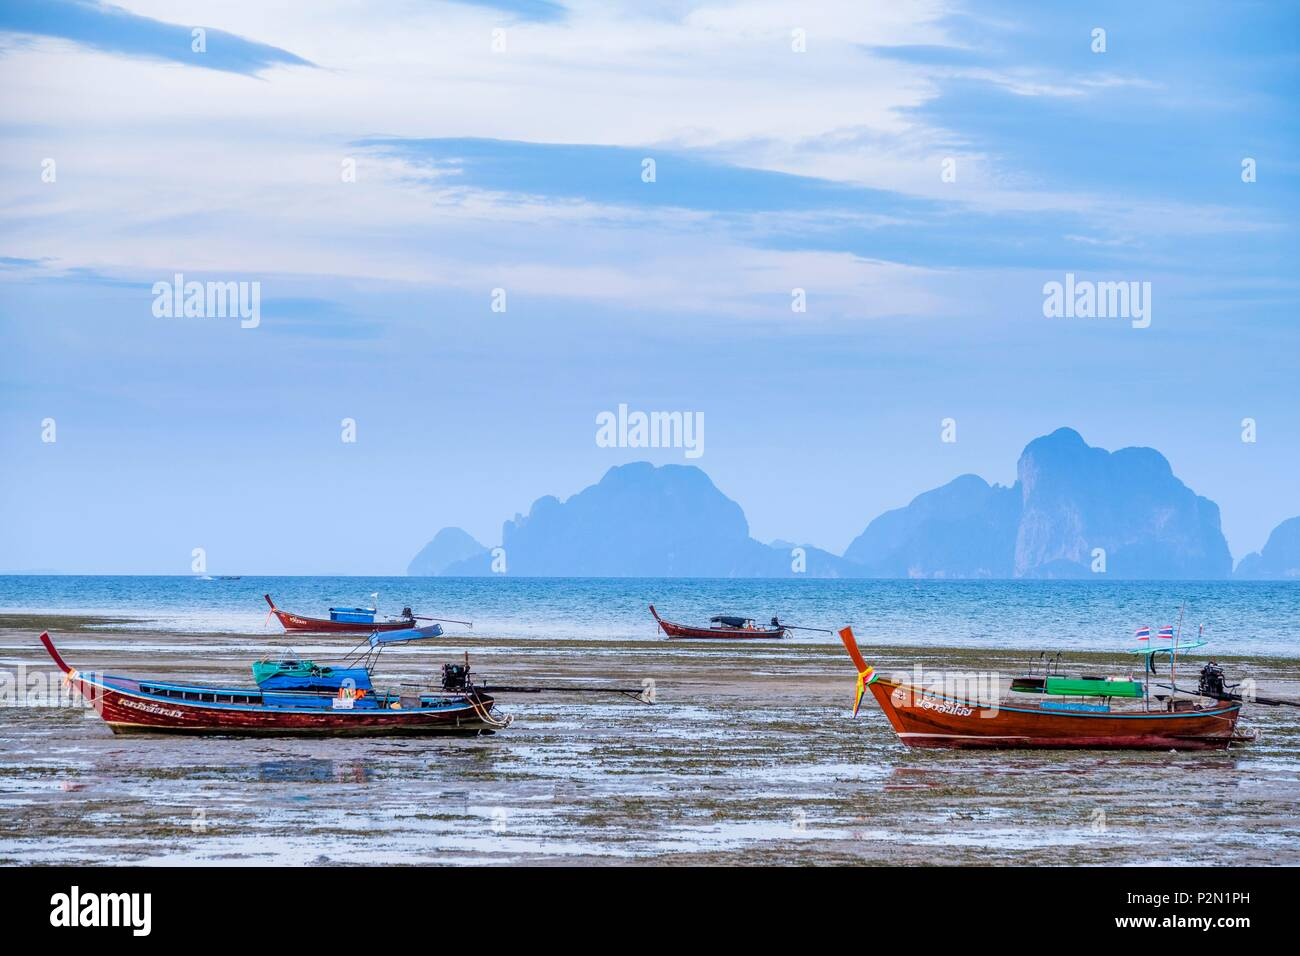 Thailand, Trang province, Ko Mook island, eastern coast, traditional long tail boats - Stock Image